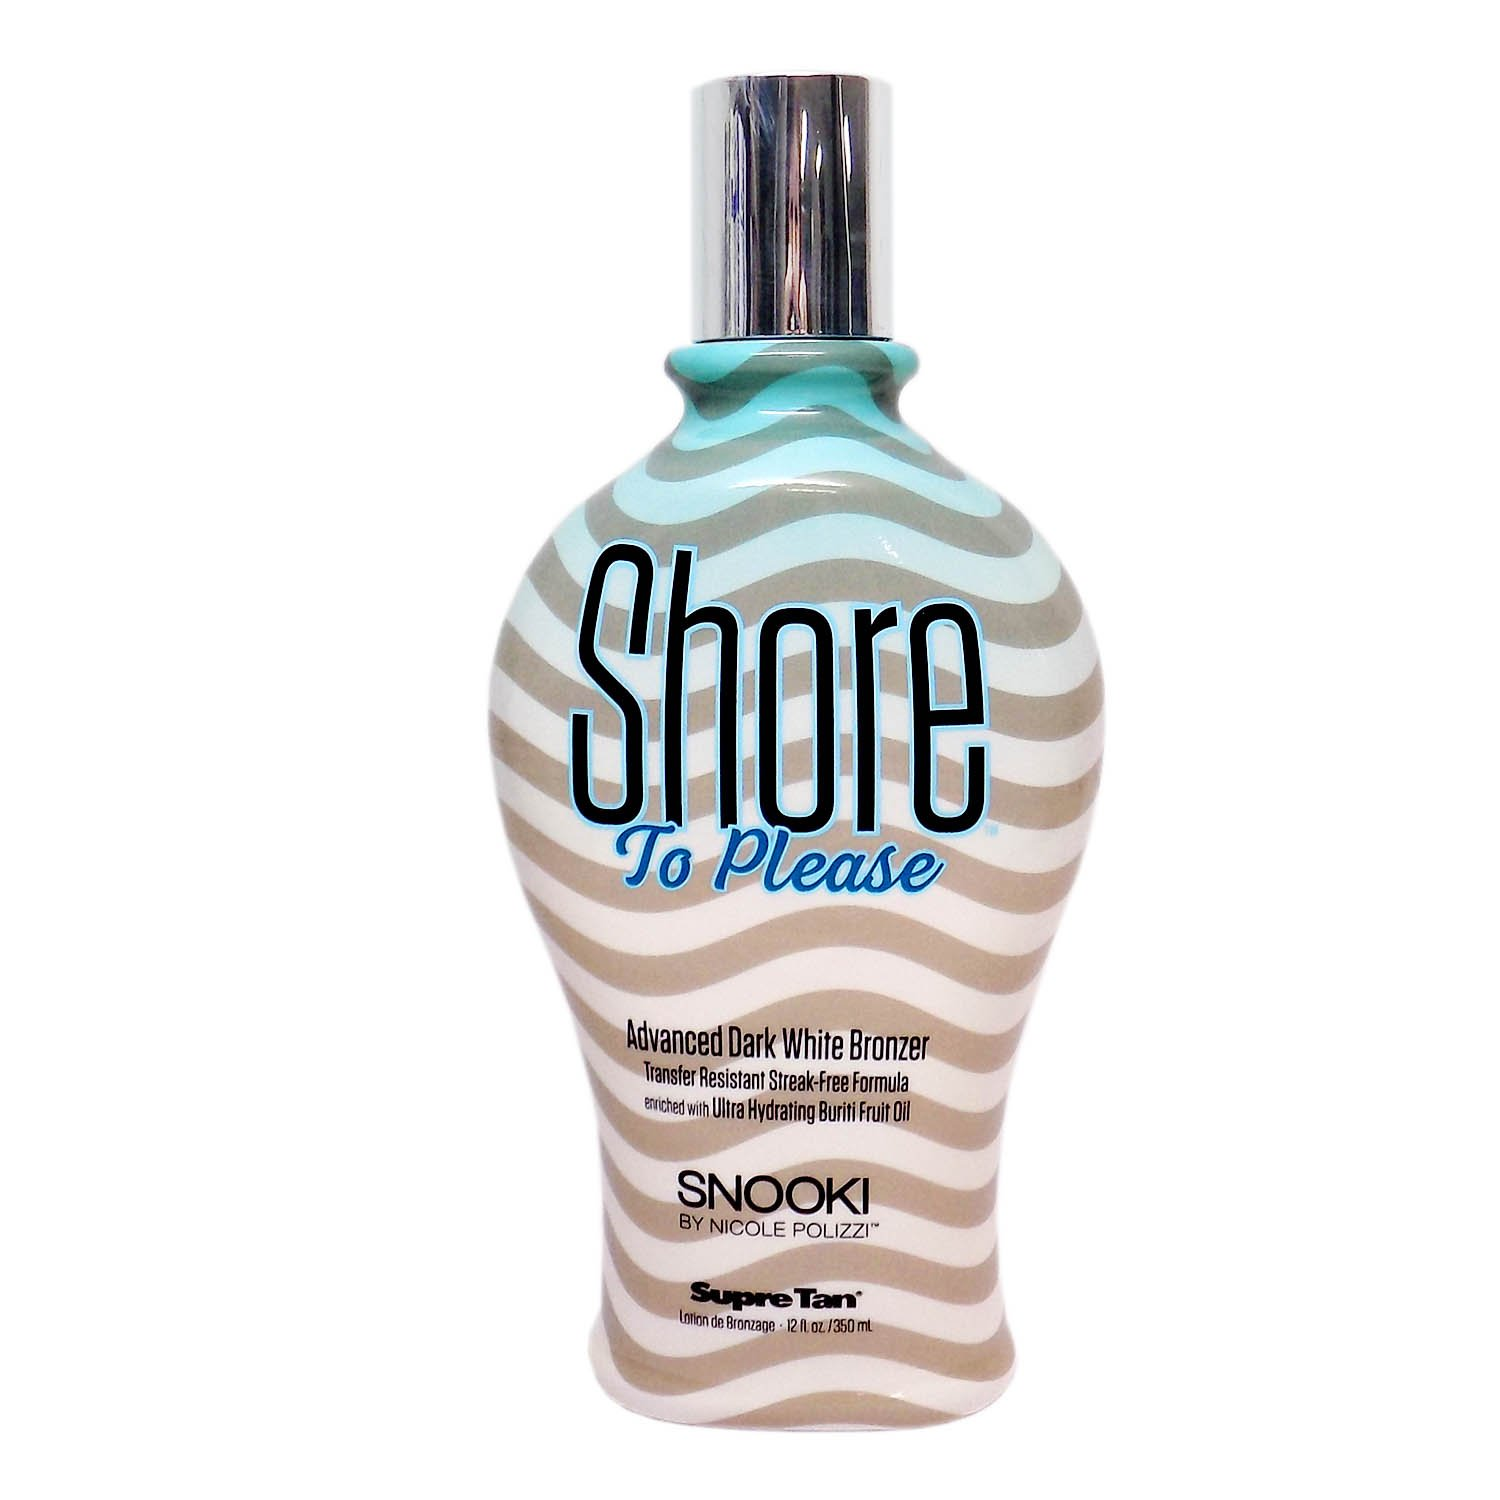 Snooki SHORE TO PLEASE Tanning Bed Lotion (12 ounces) for Indoor or Outdoor Tan. White DHA Bronzer with after tan odor eliminators.